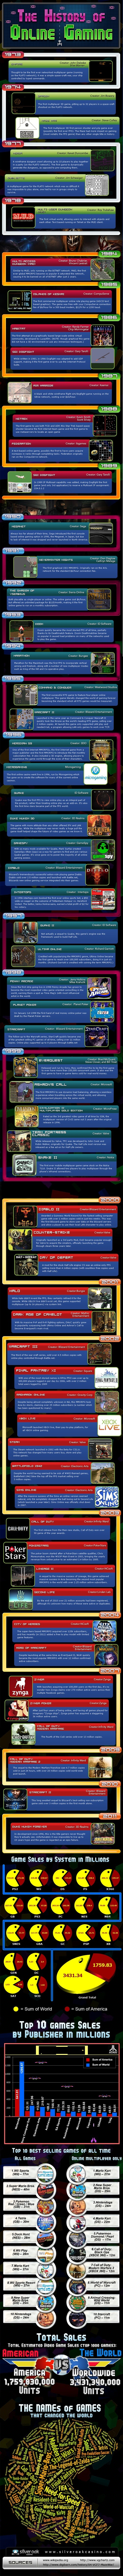 The History of Online Gaming Infographic